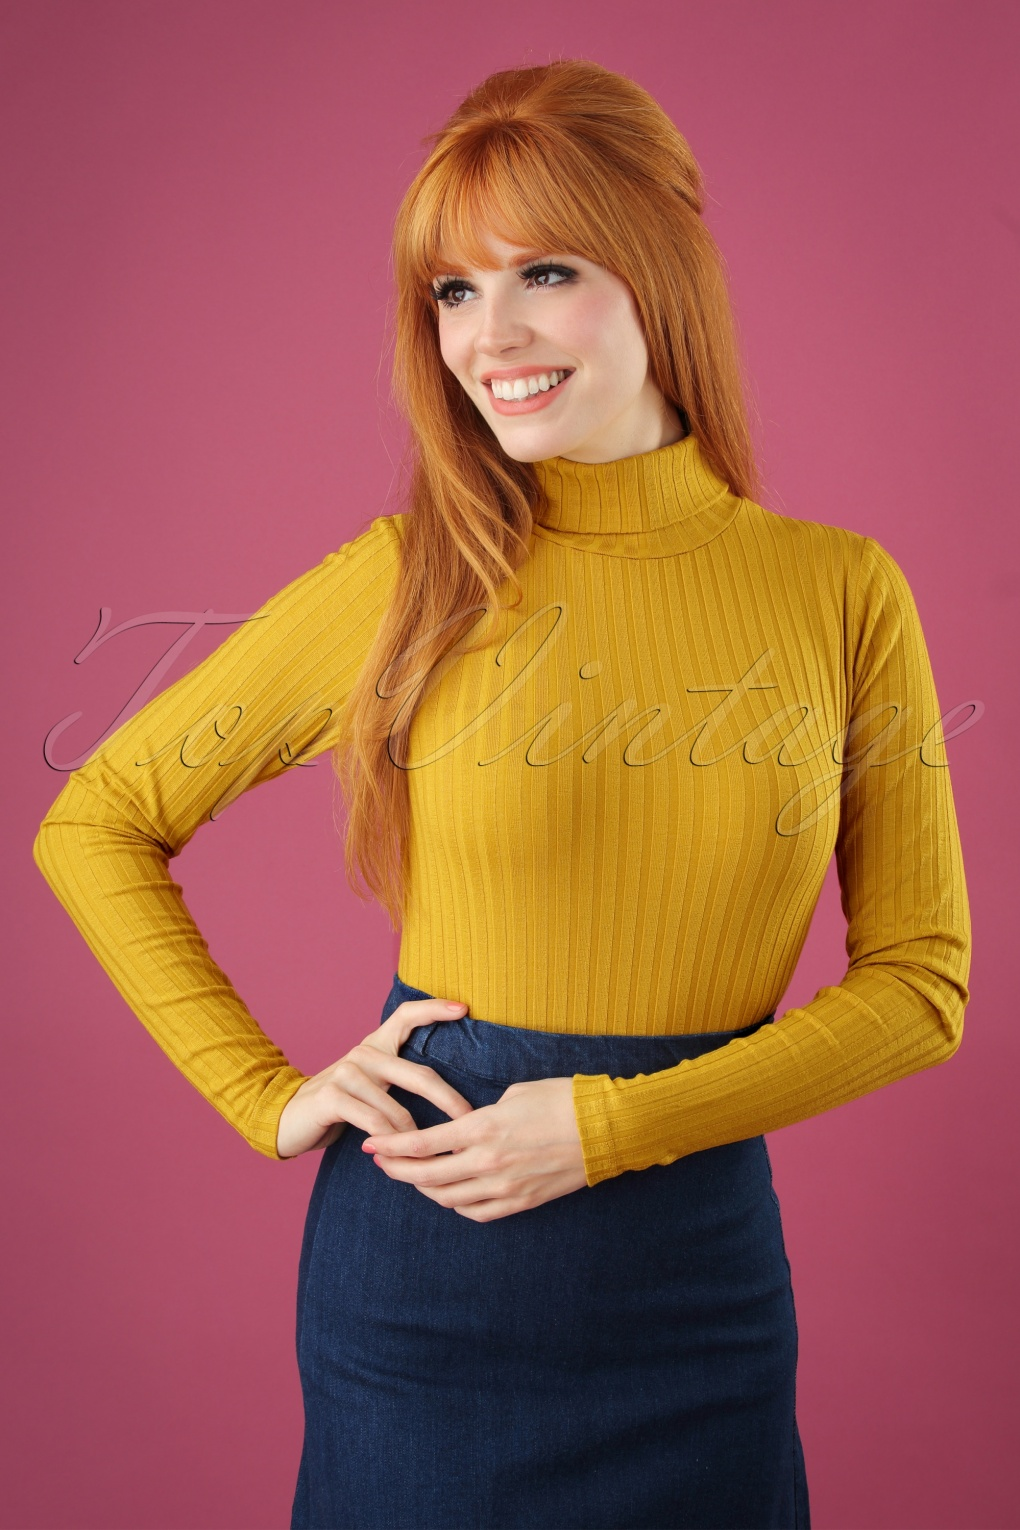 Vintage Sweaters: Cable Knit, Fair Isle Cardigans & Sweaters 70s Rollneck Roulette Top in Sunset Yellow £43.75 AT vintagedancer.com